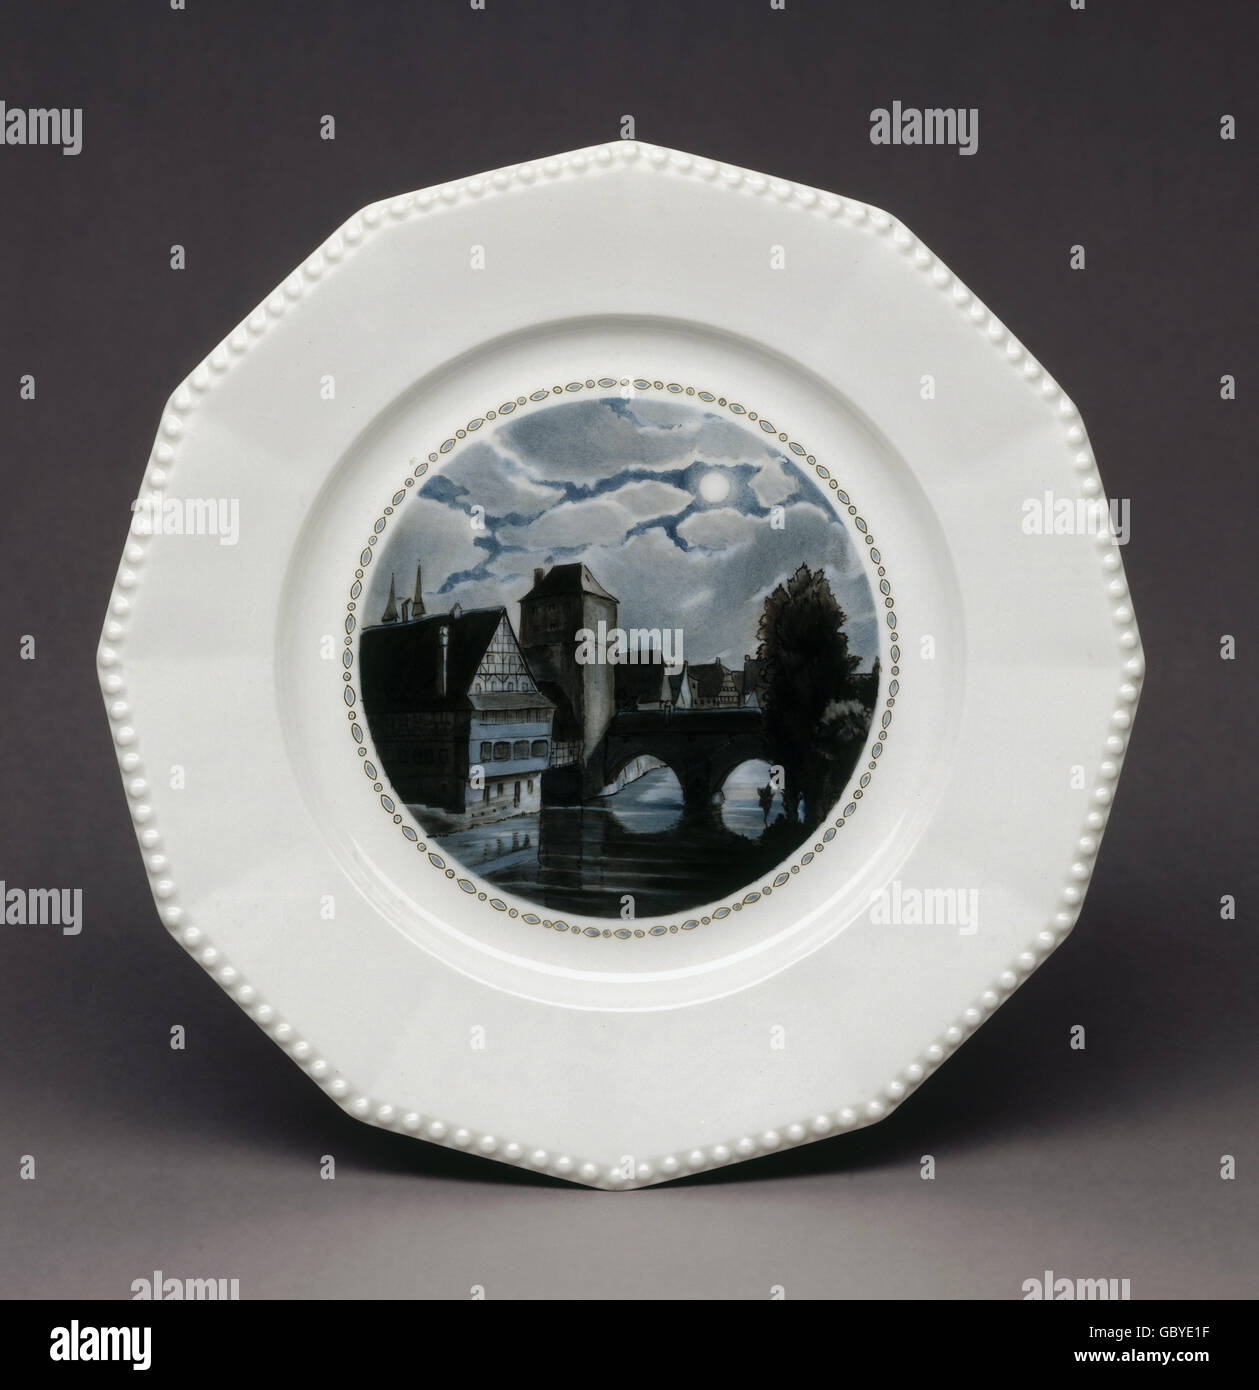 fine arts, porcelain, Nymphenburg porcelain, plate 'Perl' with 'Henkersteg at Night', 1926, design: - Stock Image